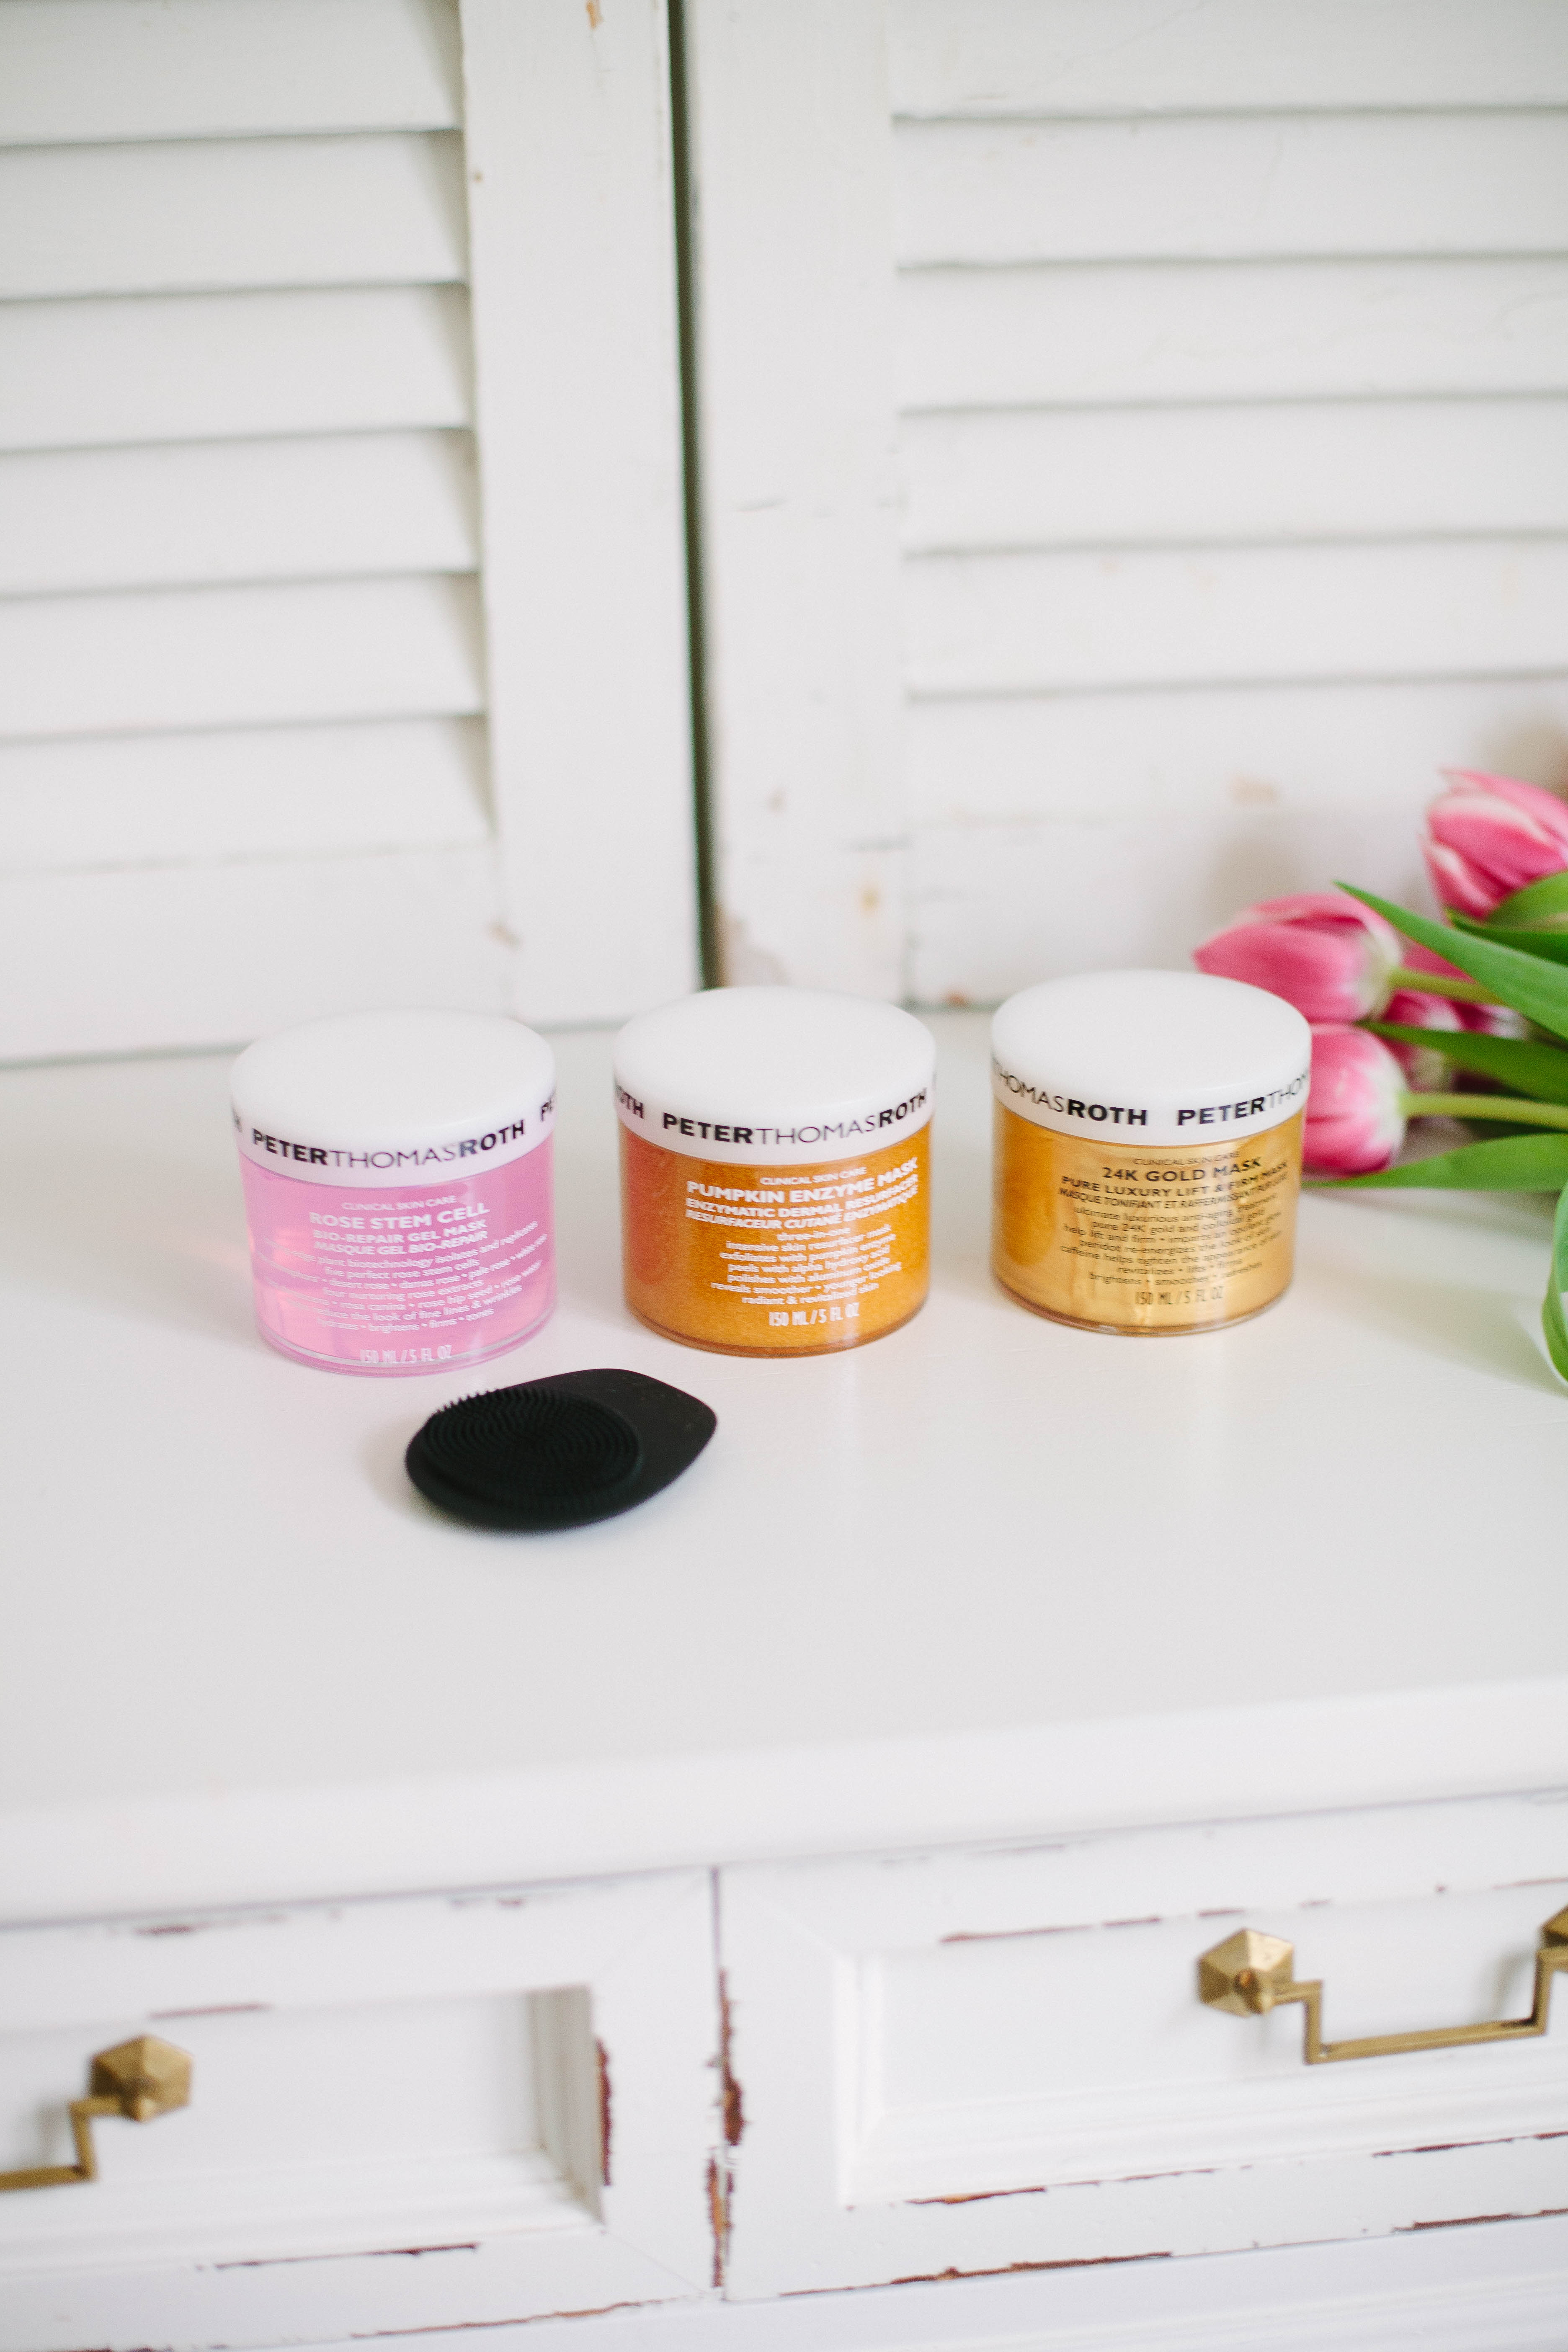 These are all the beauty tips your mom was right about, because a mother always knows best! These Peter Thomas Roth Masks will keep your skin looking vibrant and radiant!